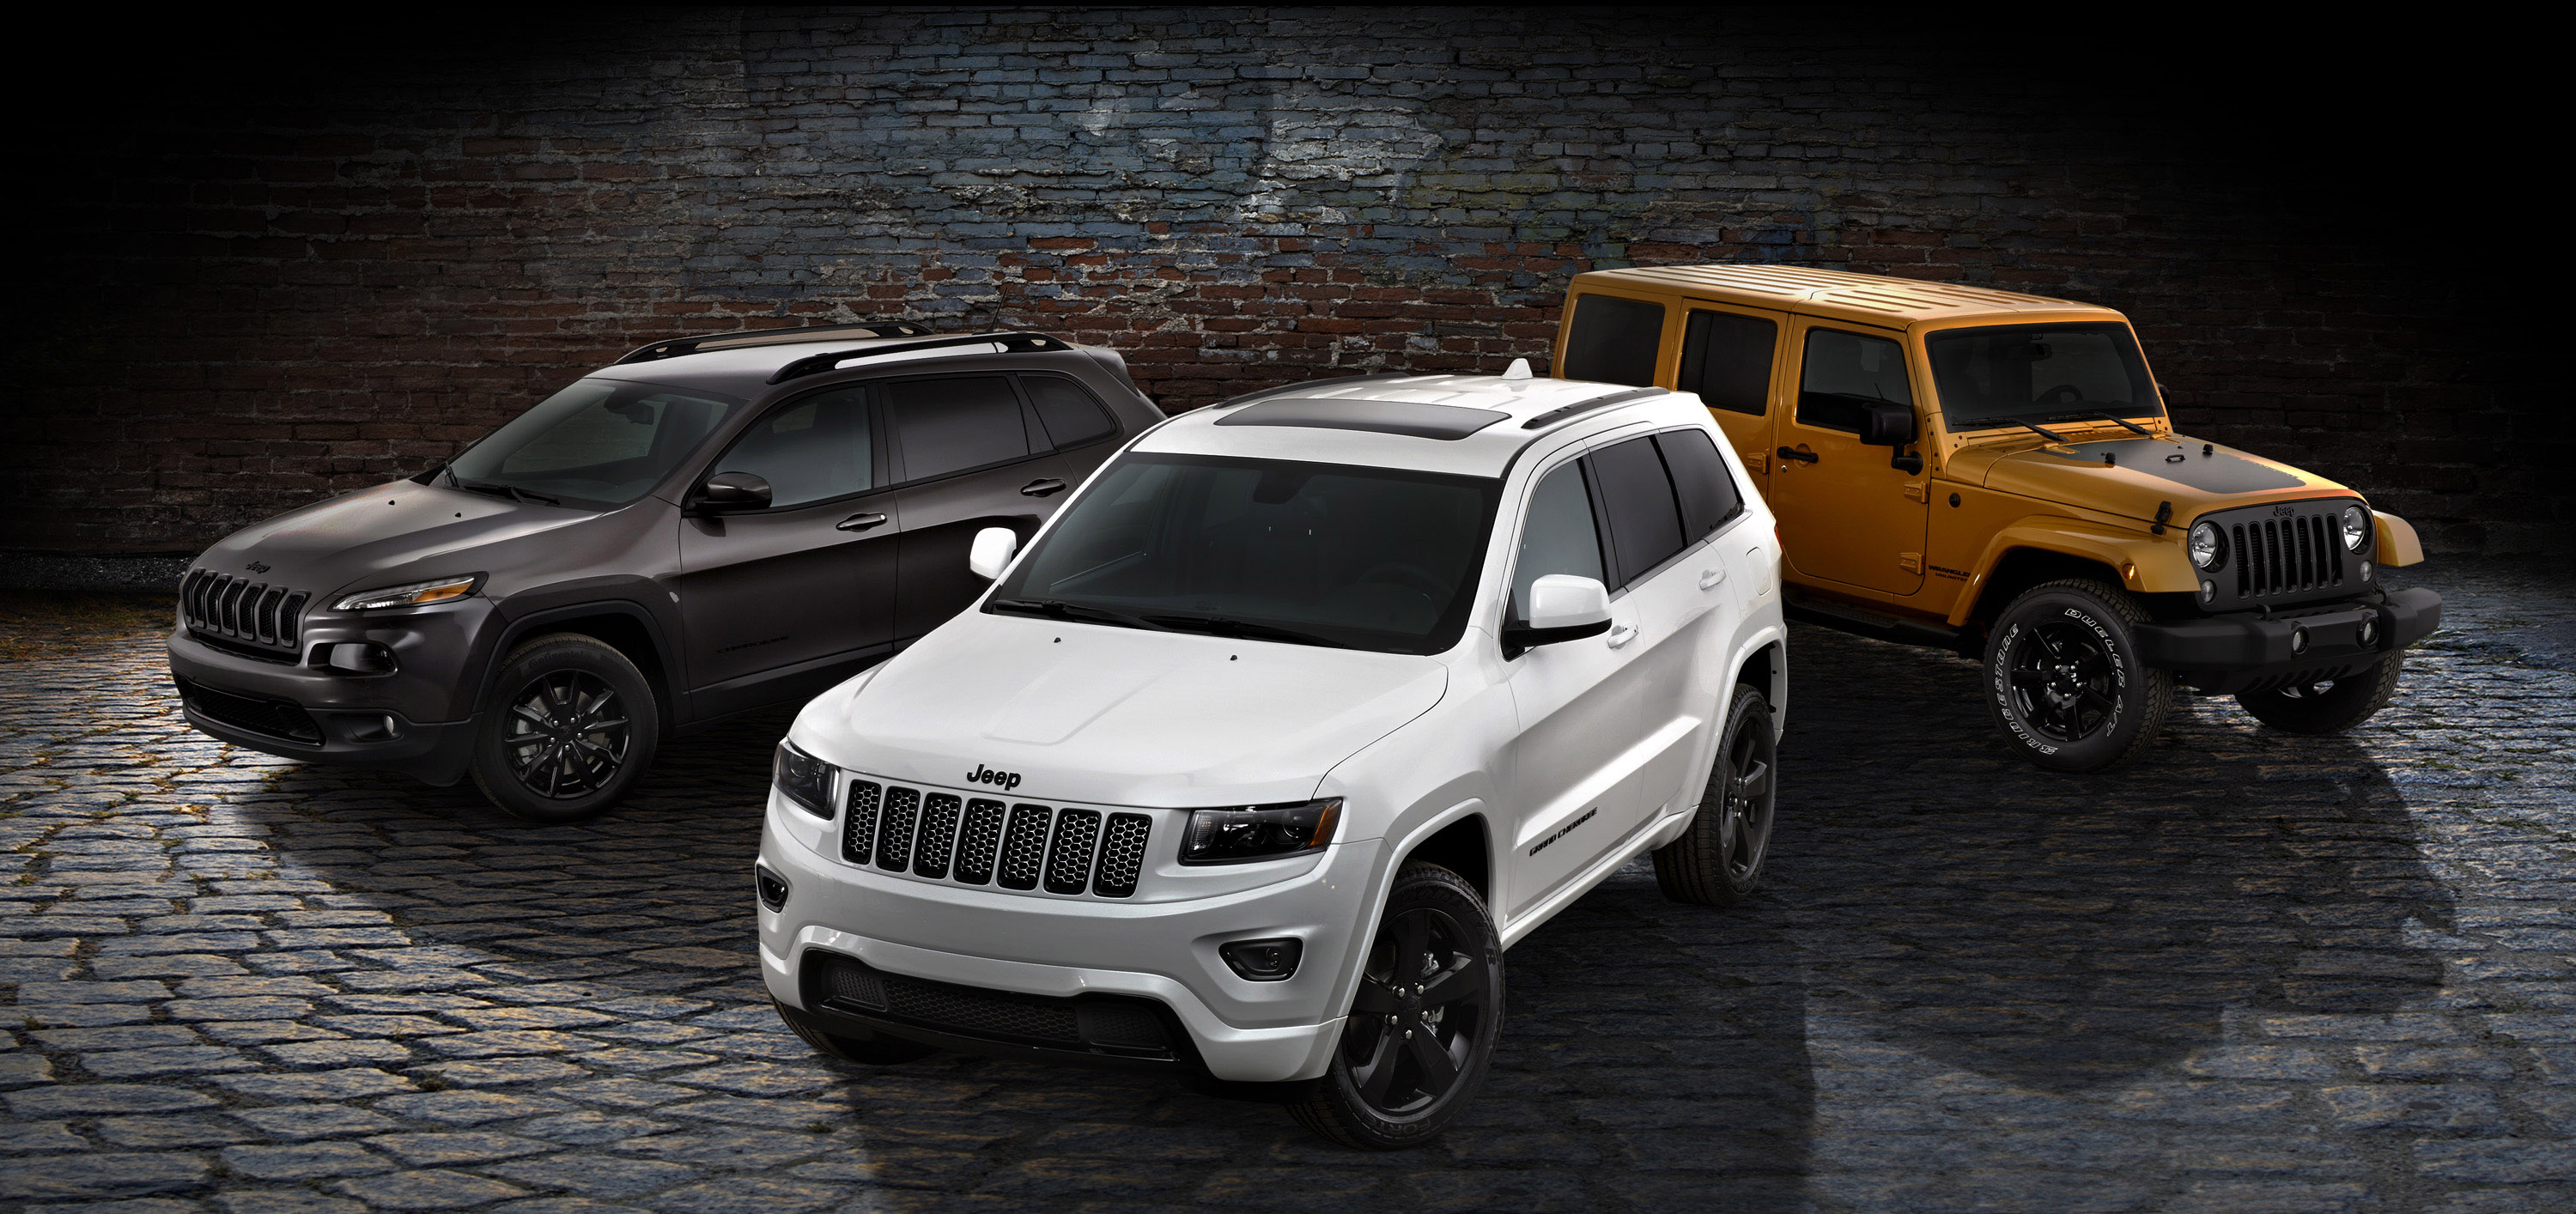 jeep limited editions cherokee htm altitude grand edition